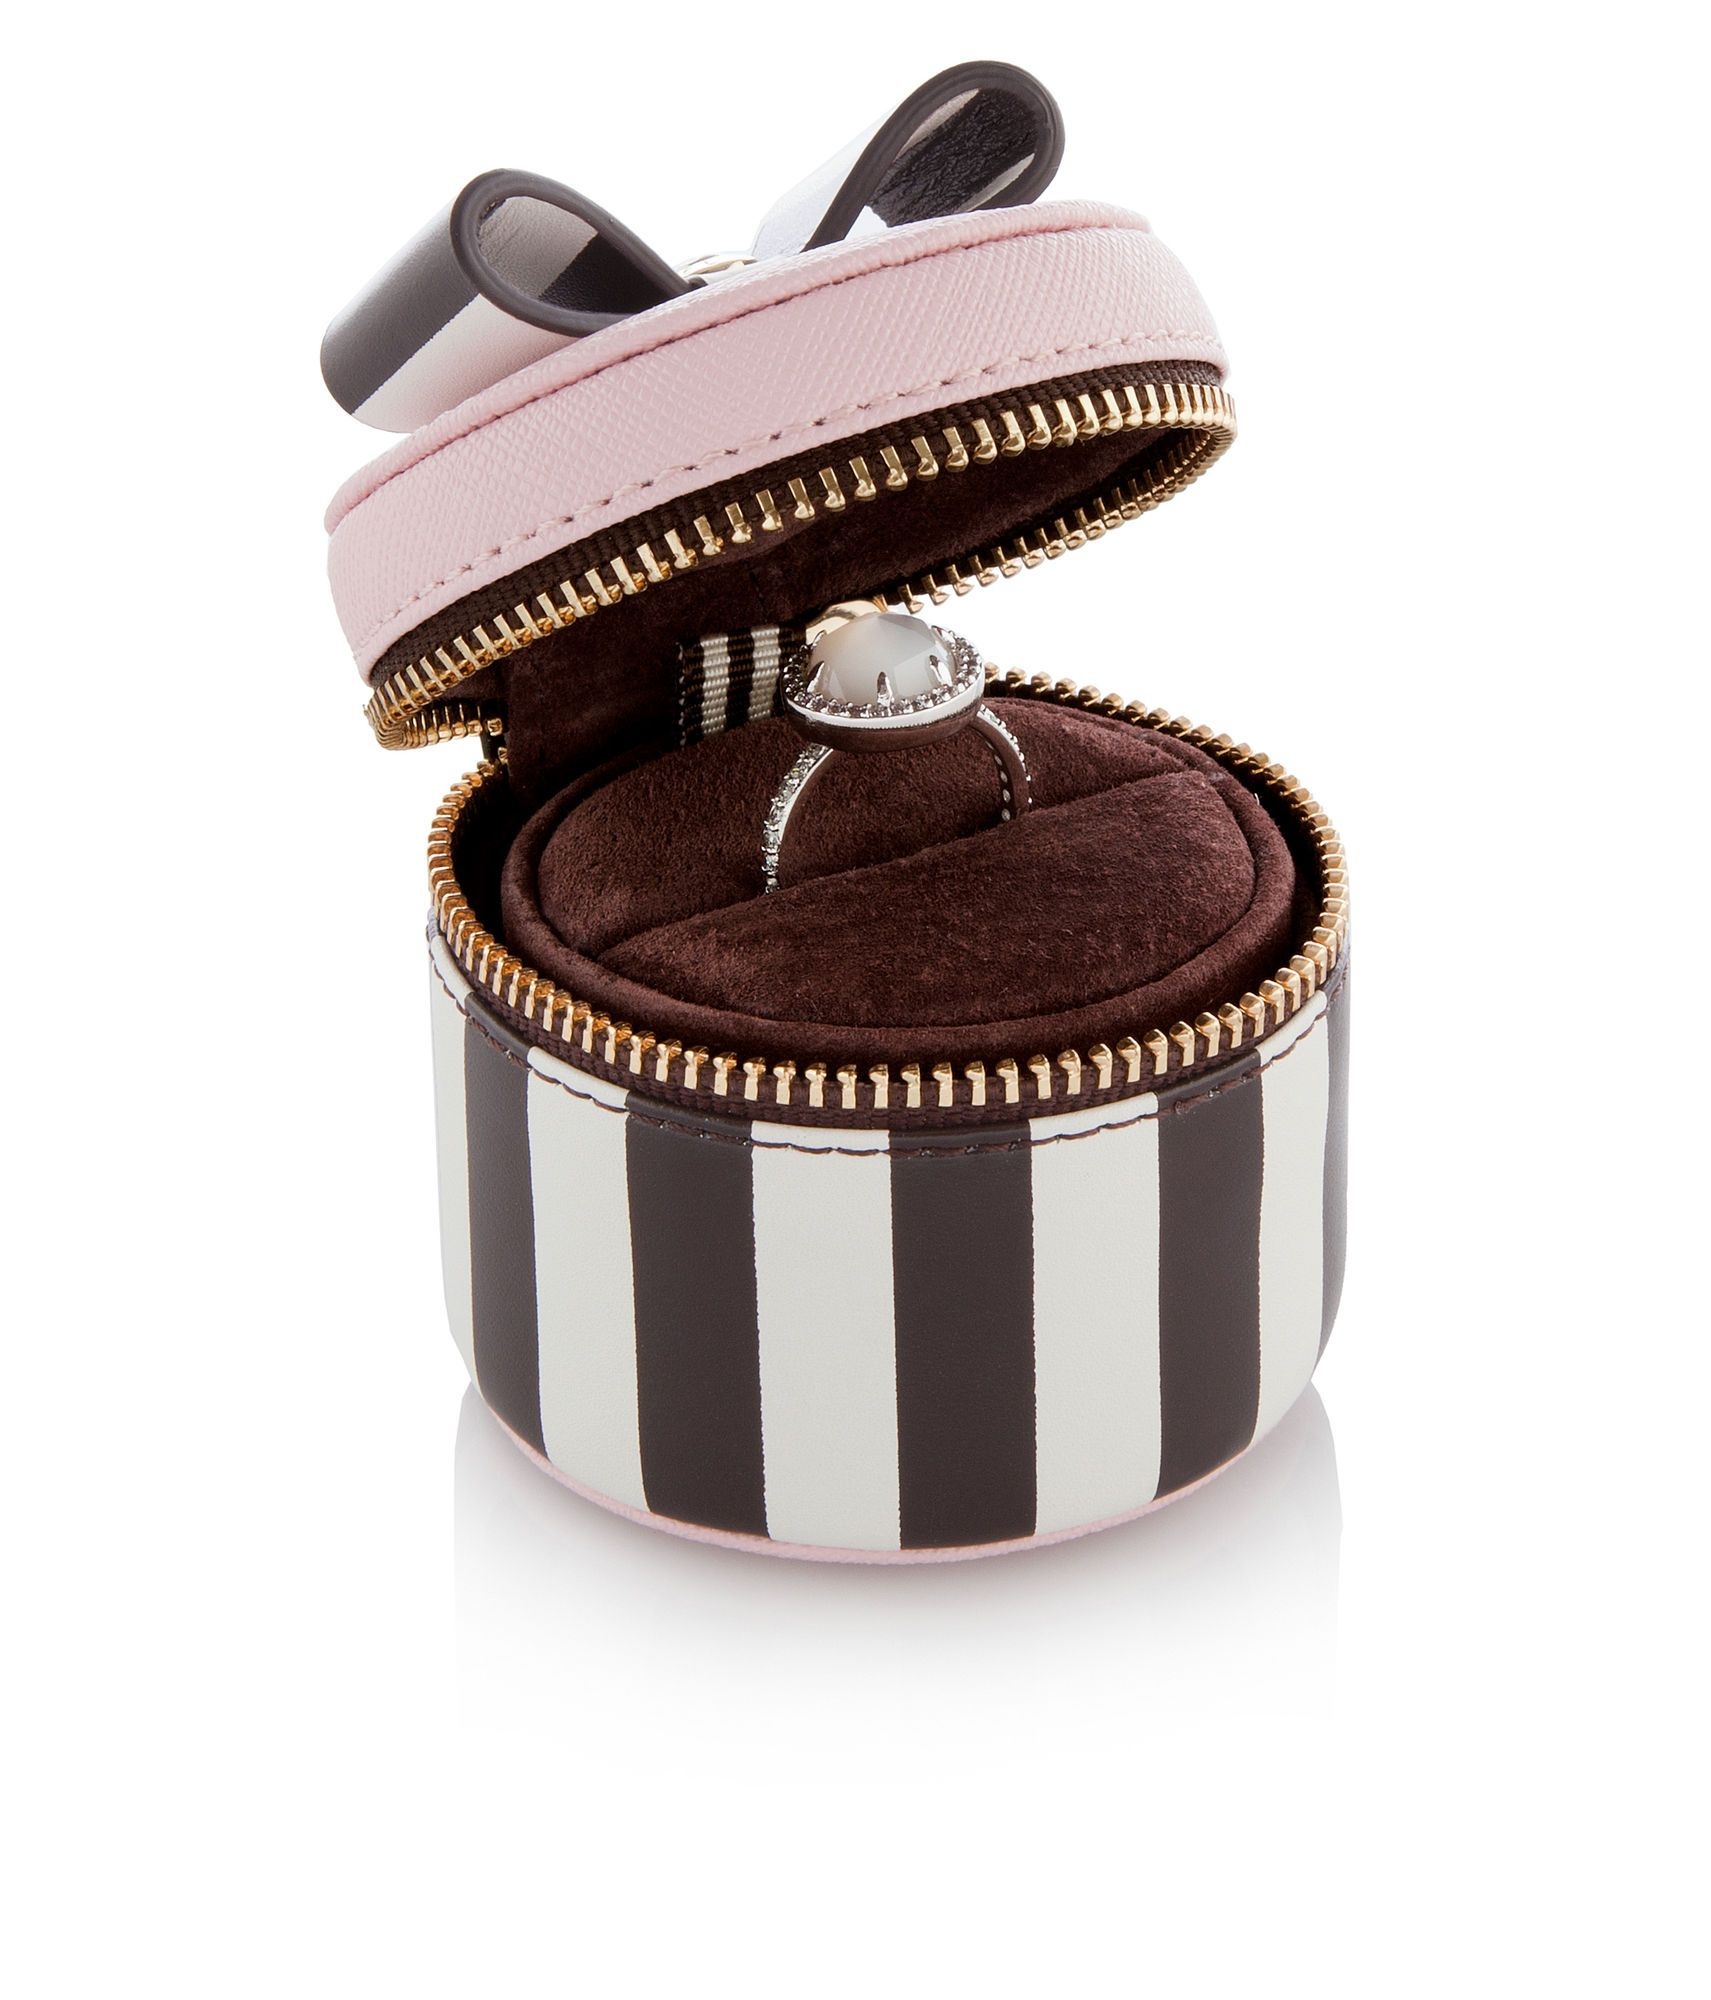 Mini Ring Box | Best Sellers | Henri Bendel